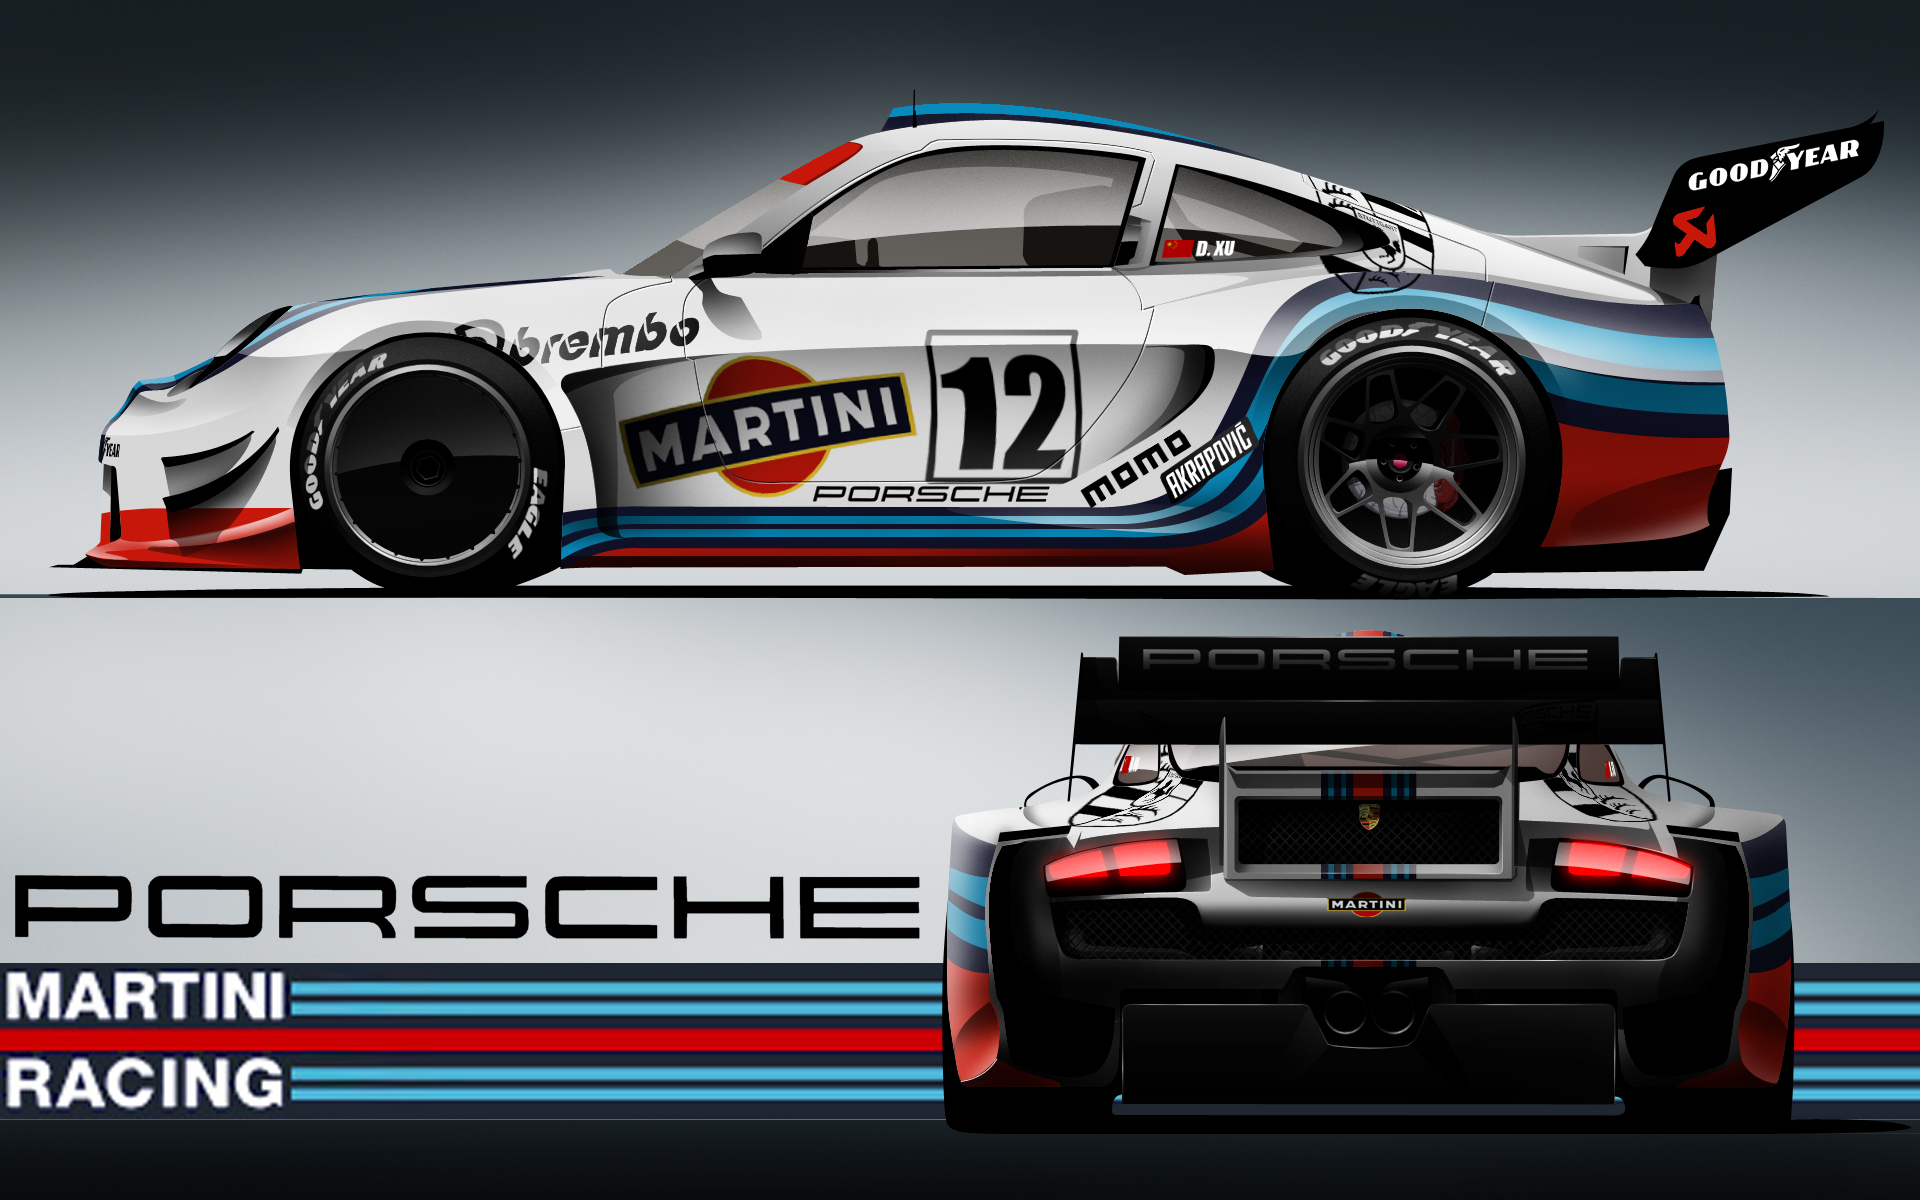 martini racing porsche by karayaone on deviantart. Black Bedroom Furniture Sets. Home Design Ideas